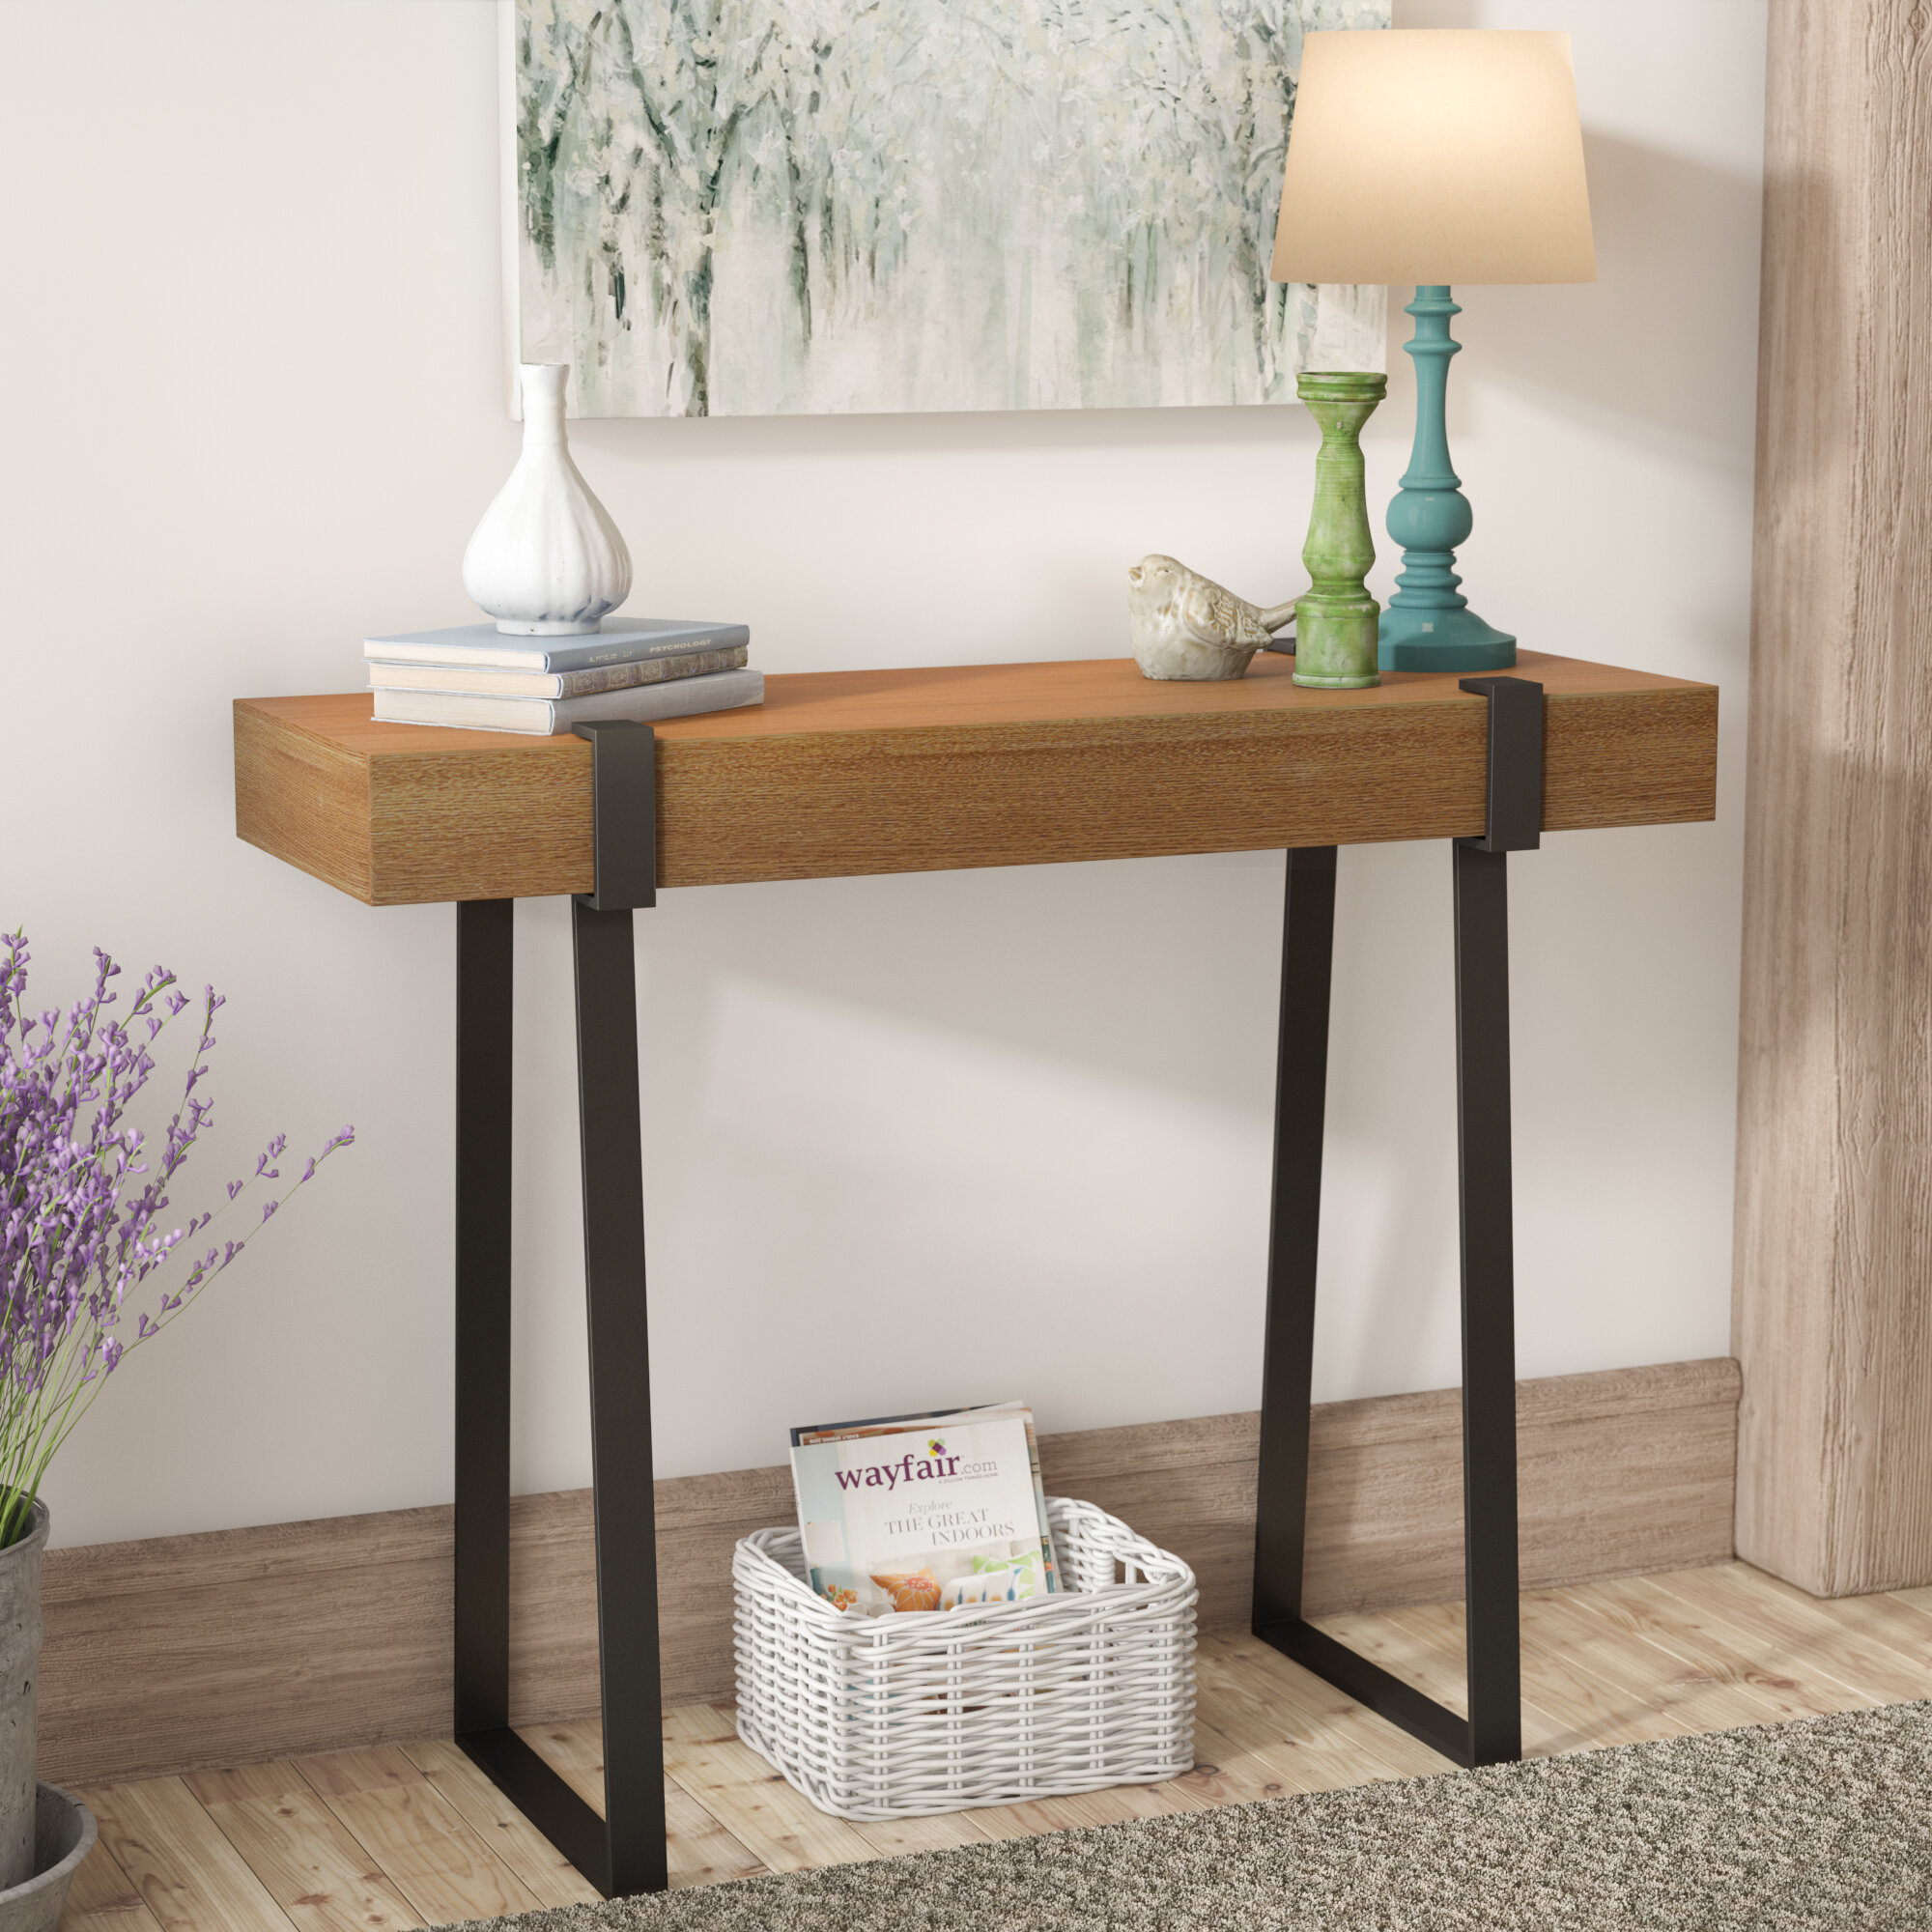 Laurel Foundry Modern Farmhouse Wisteria Console Table Reviews